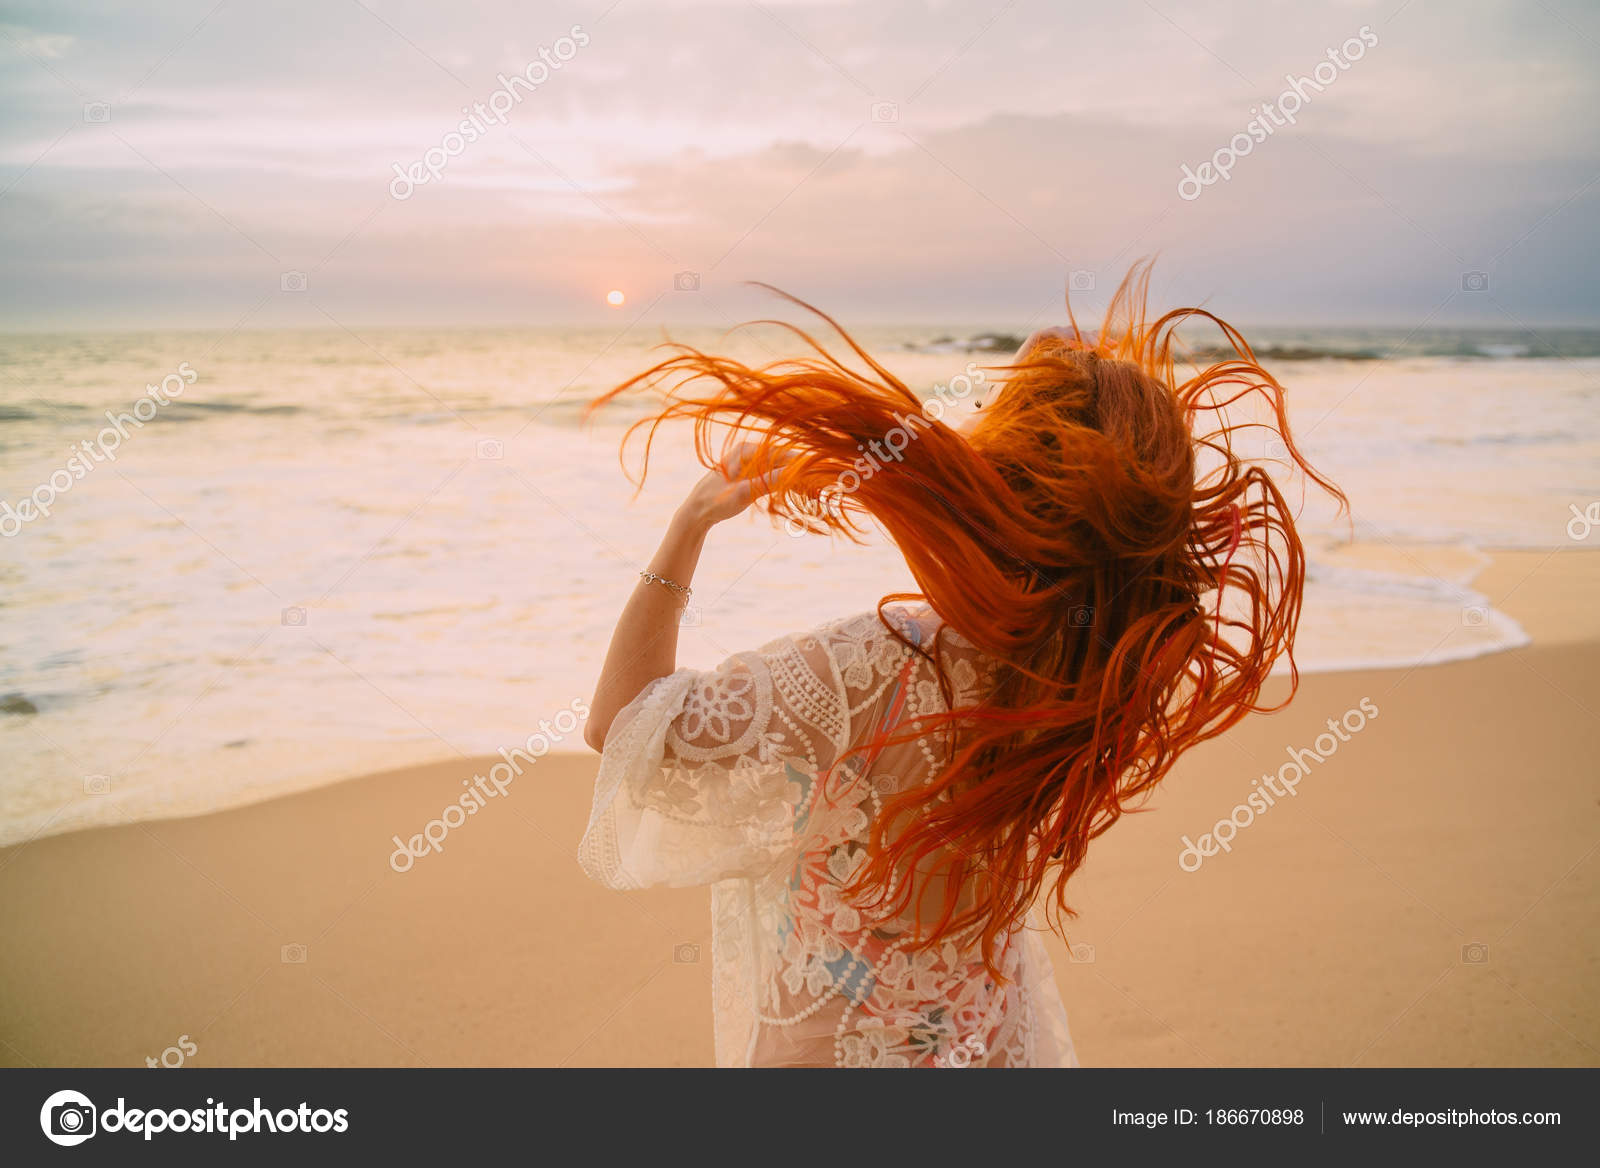 MARIE-MADELEINE Depositphotos_186670898-stock-photo-young-red-haired-woman-with